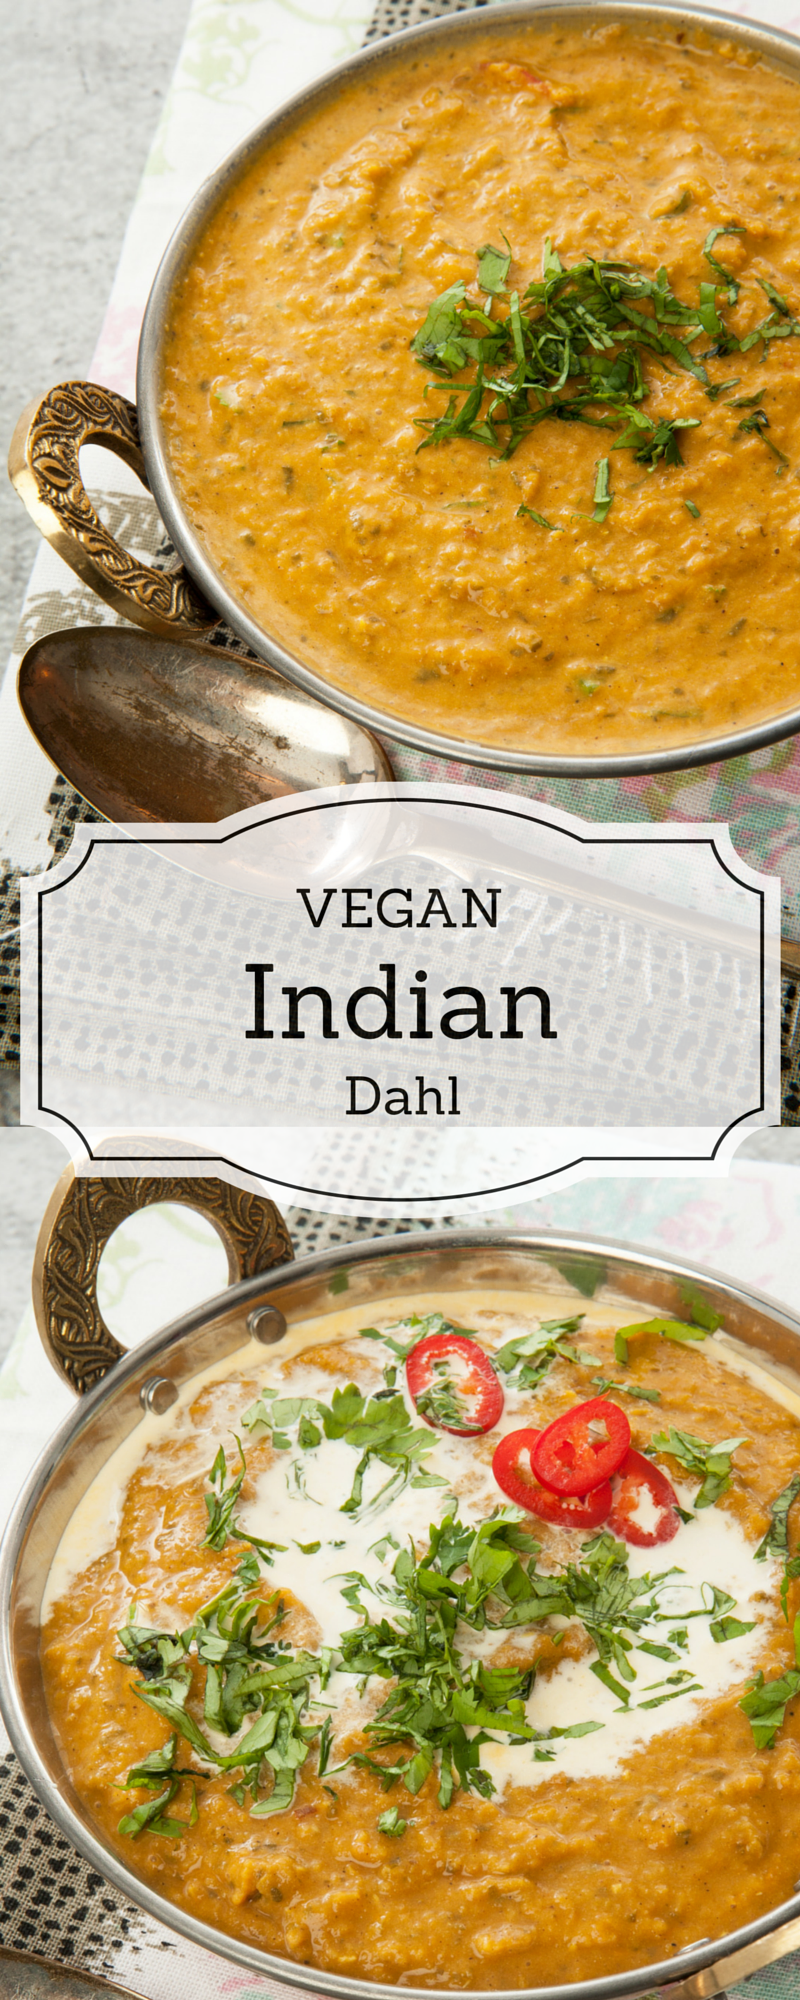 Vegan Indian Dahl Spicy Aromatic Lentil Curry EASY